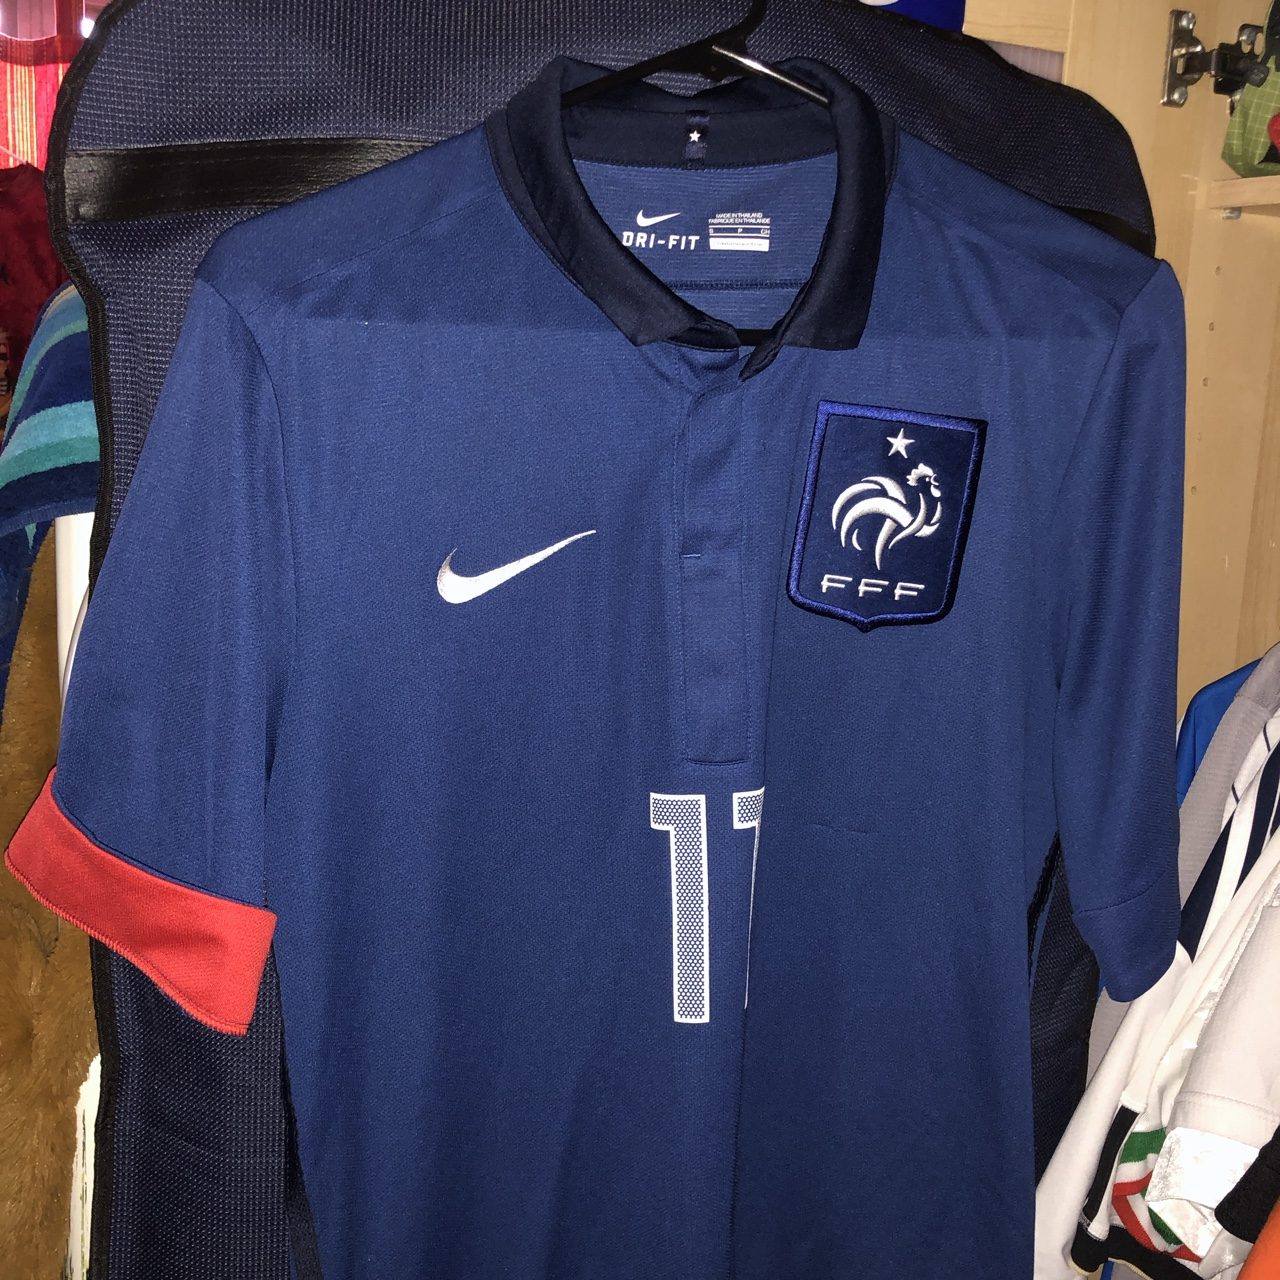 finest selection 3296a 635cb Nike 2010 World Cup France National Jersey w/ Nasri ...